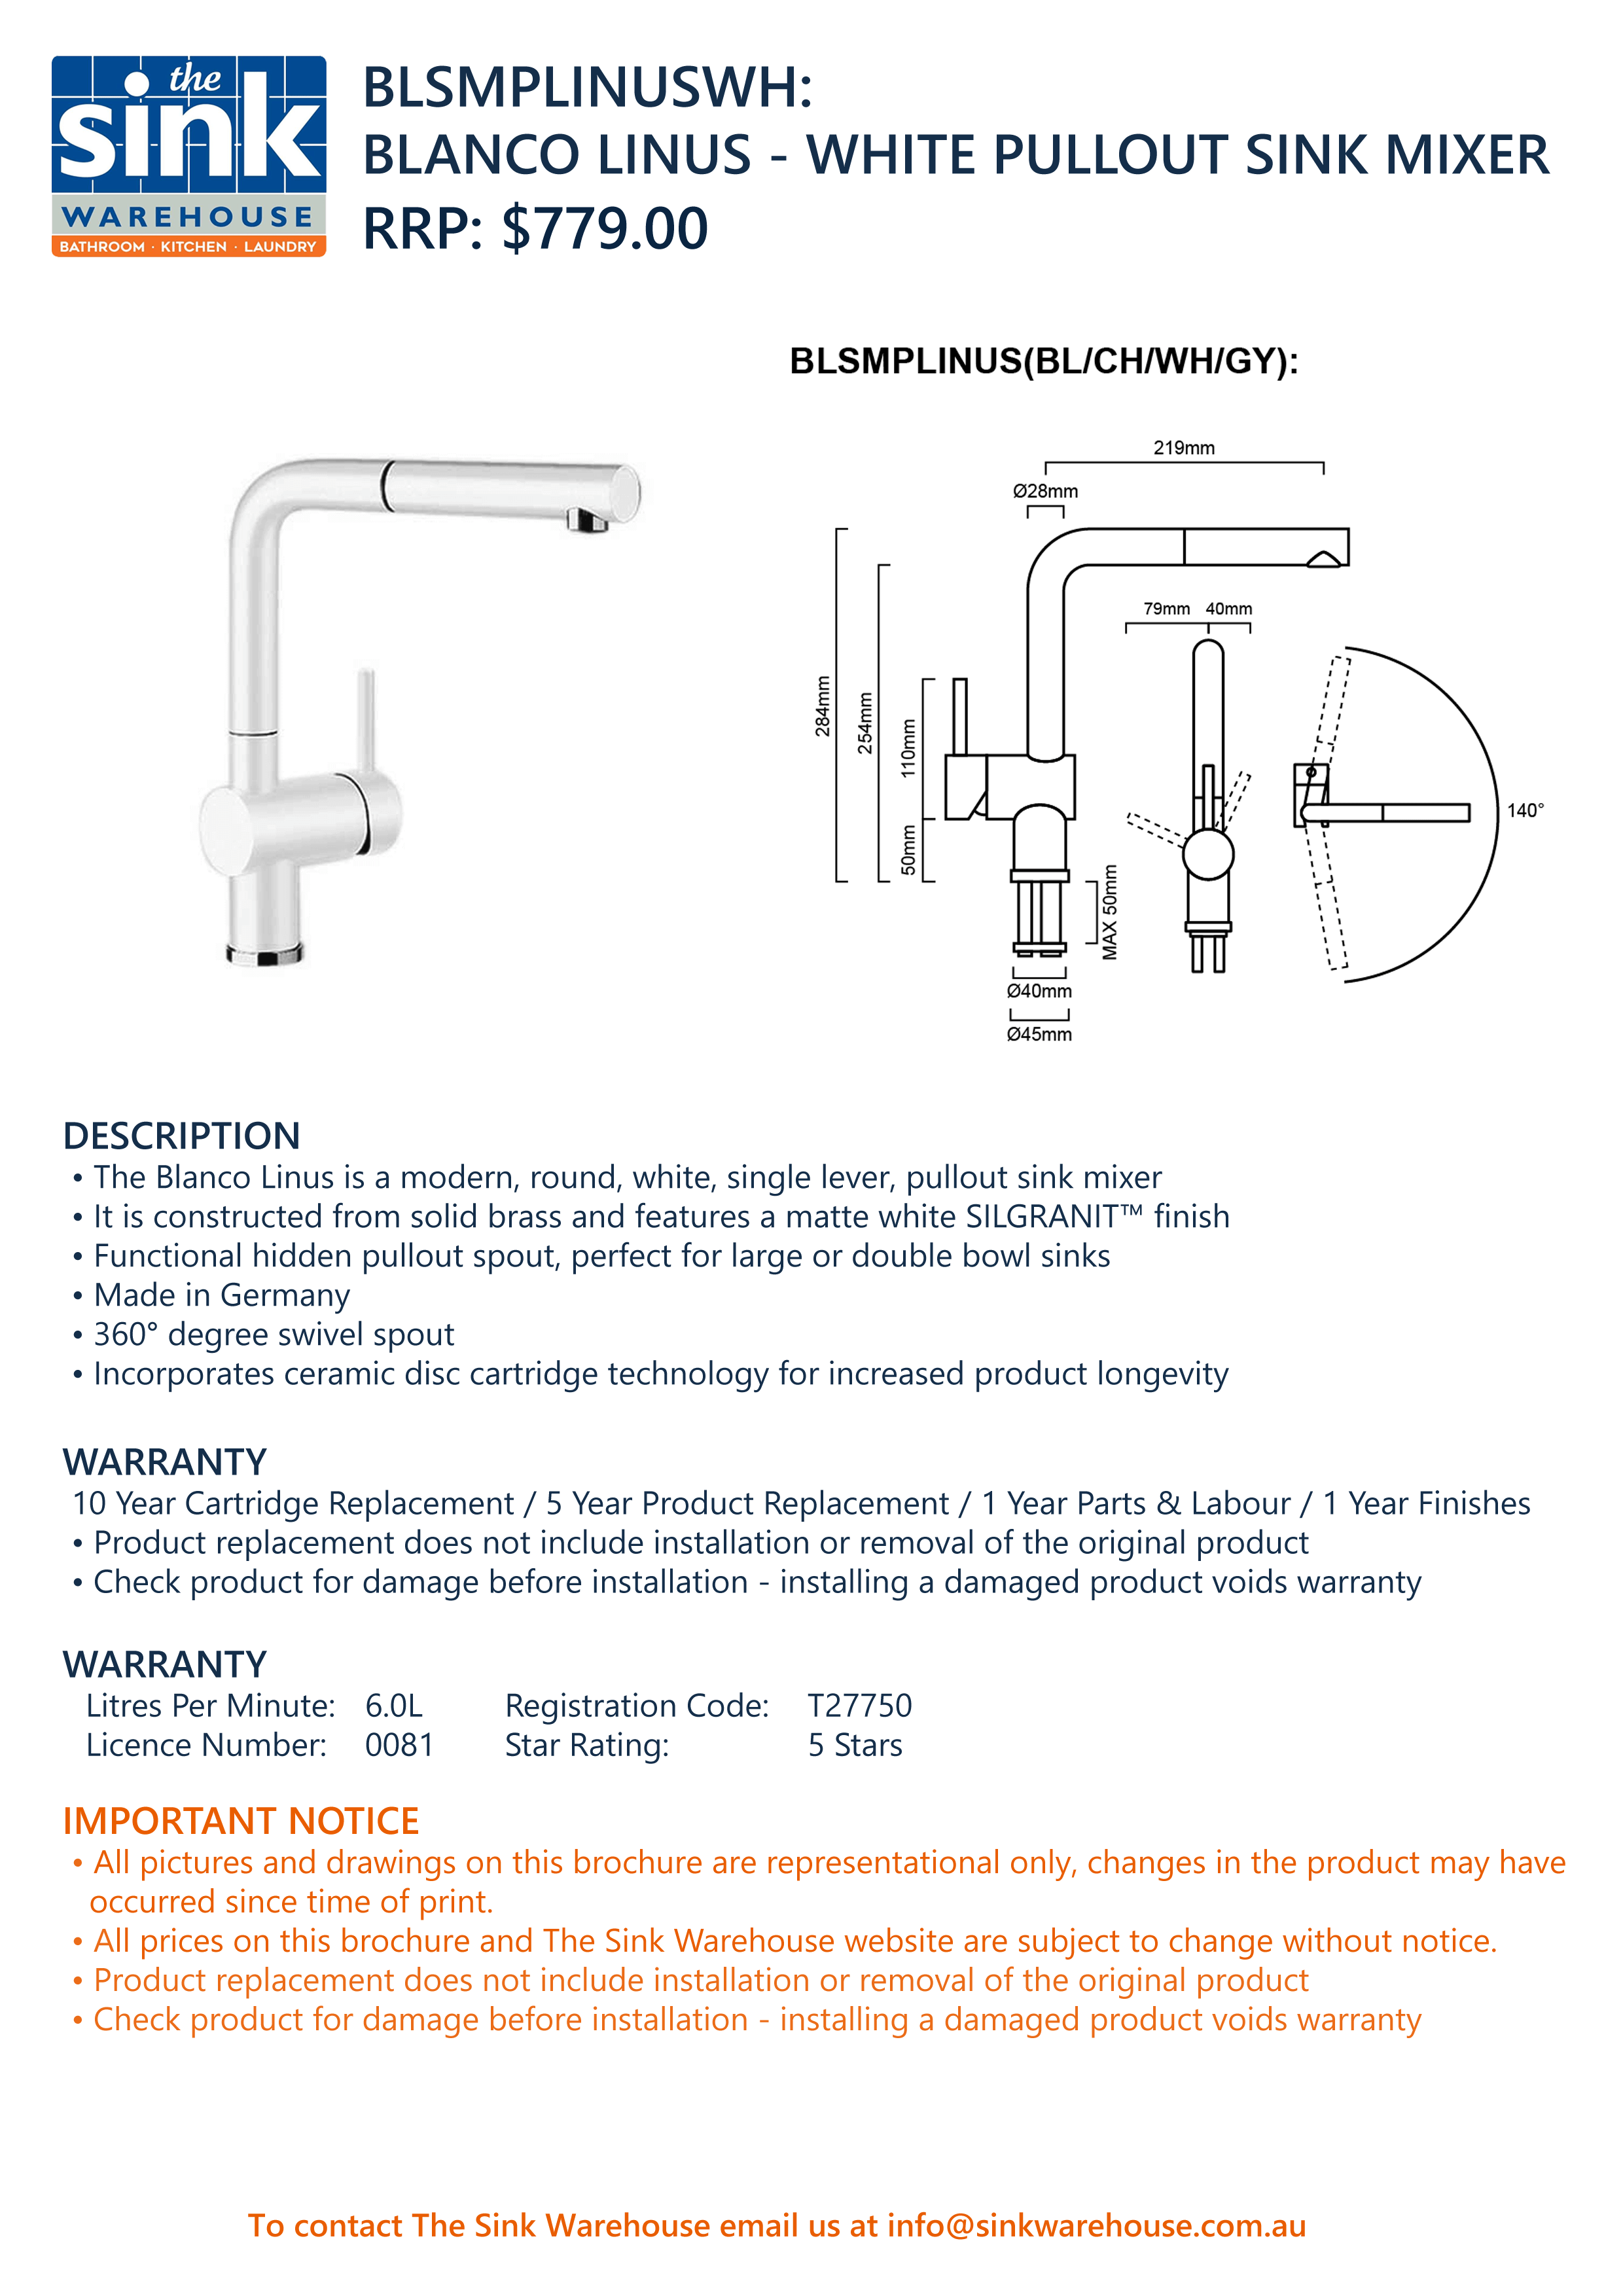 blsmplinuswh-product-spec-sheet.png